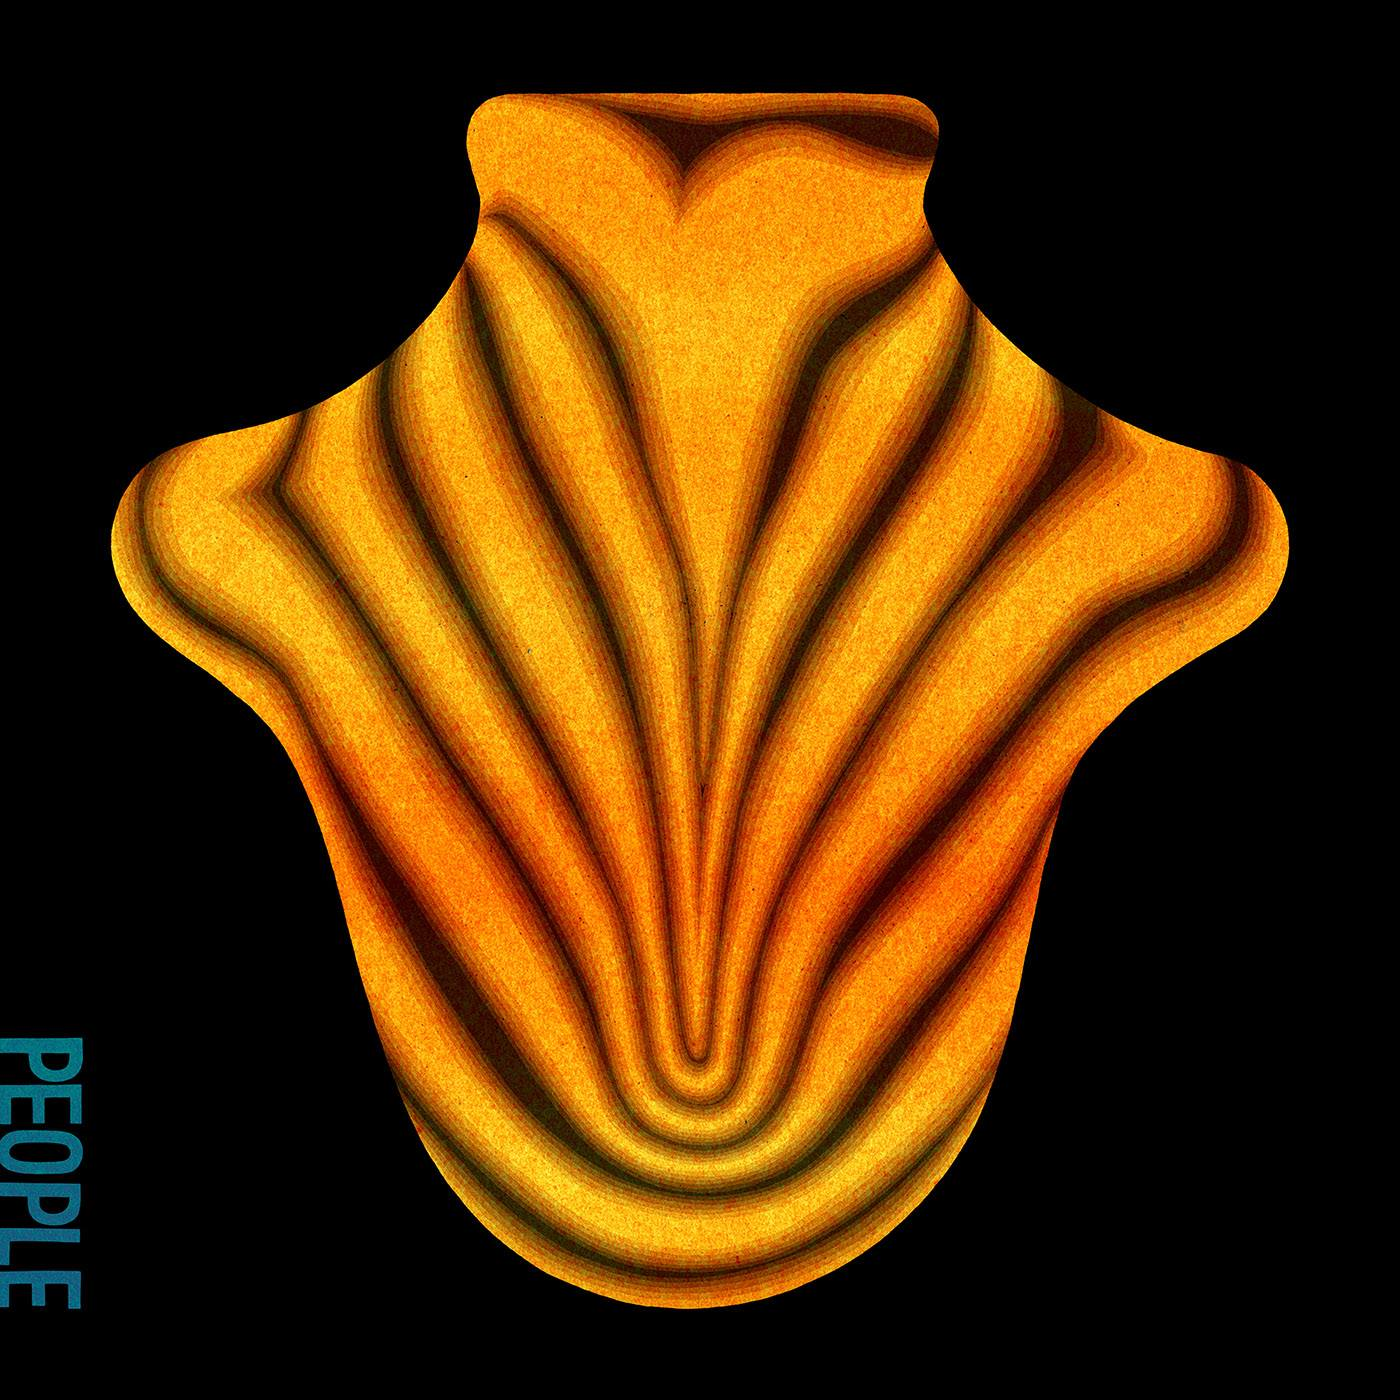 Big Red Machine Aaron Dessner Justin Vernon Album Art Cover